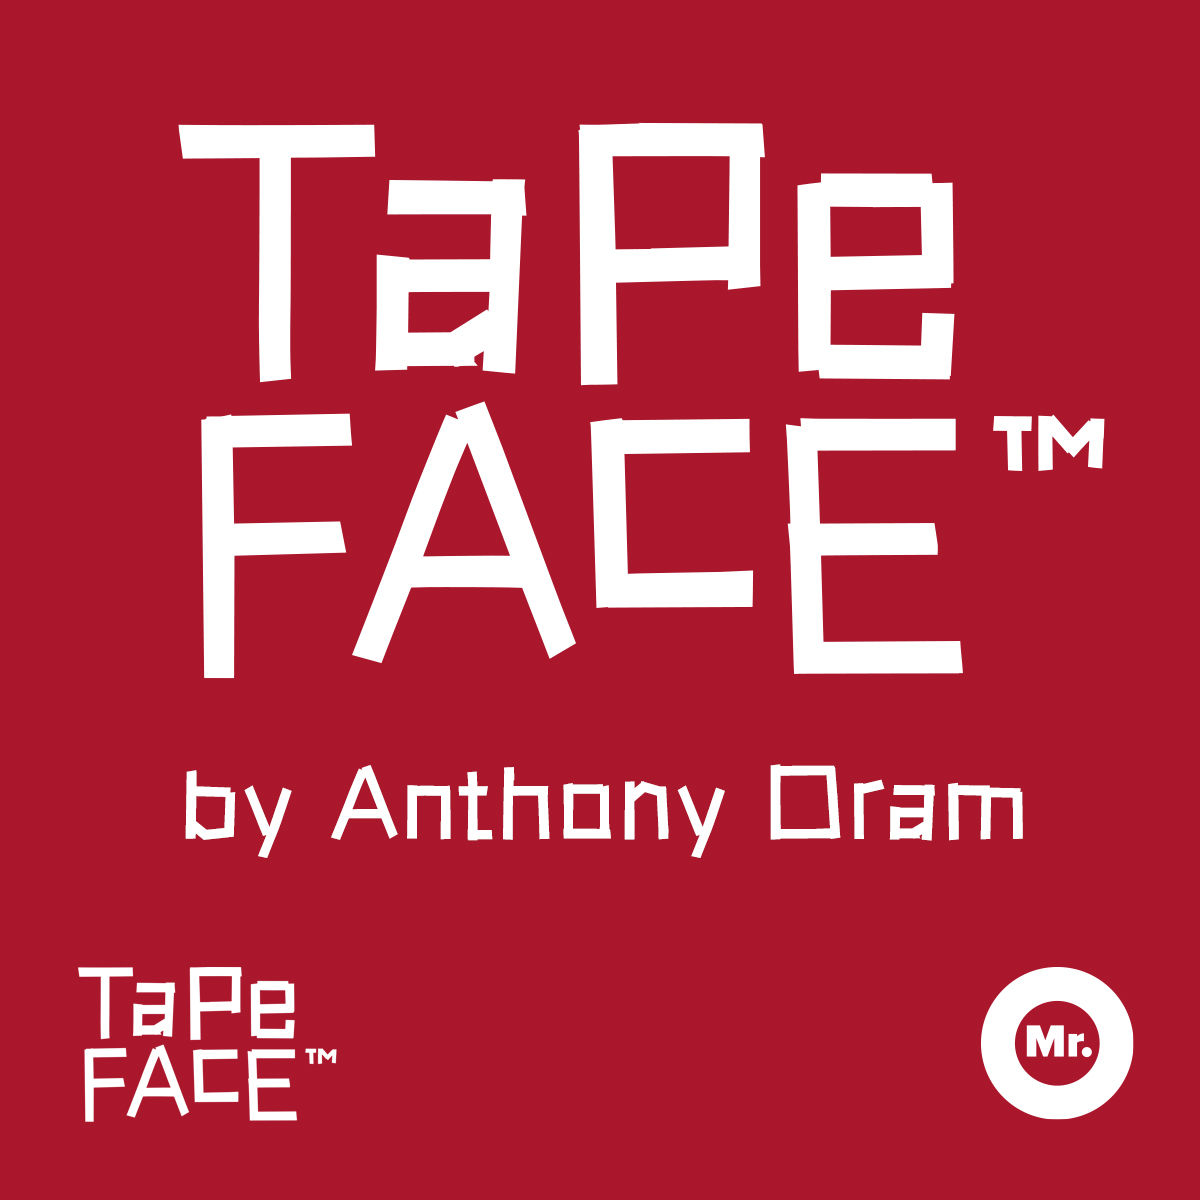 Tape-Face™ Typeface - product image